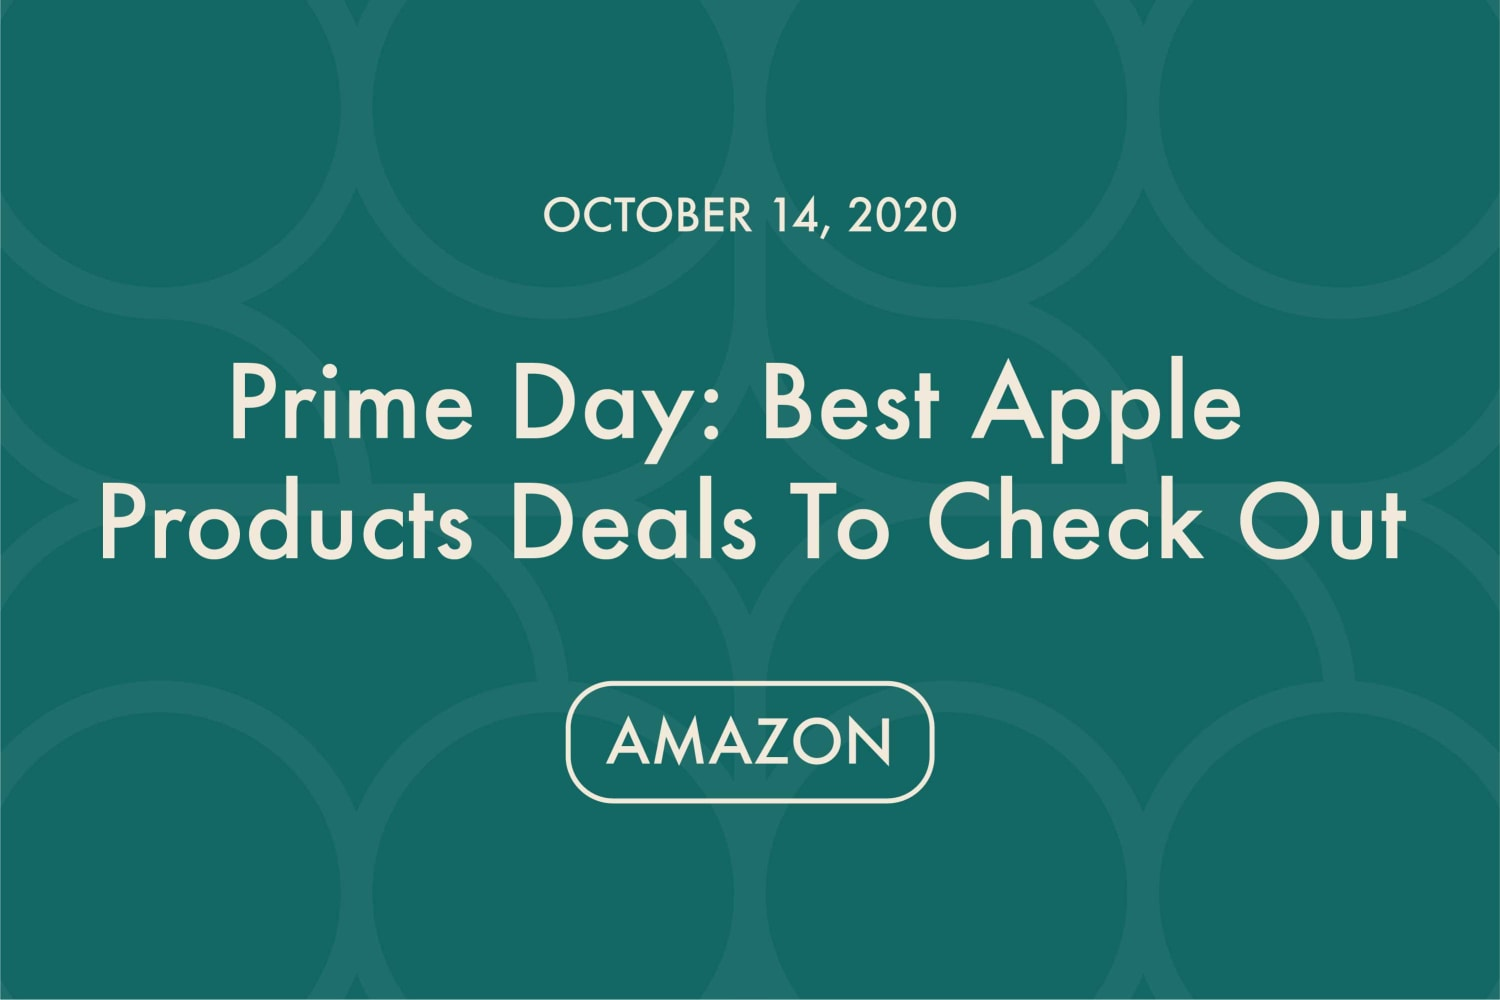 best-apple-product-prime-day-deals-to-check-out-20201014-1